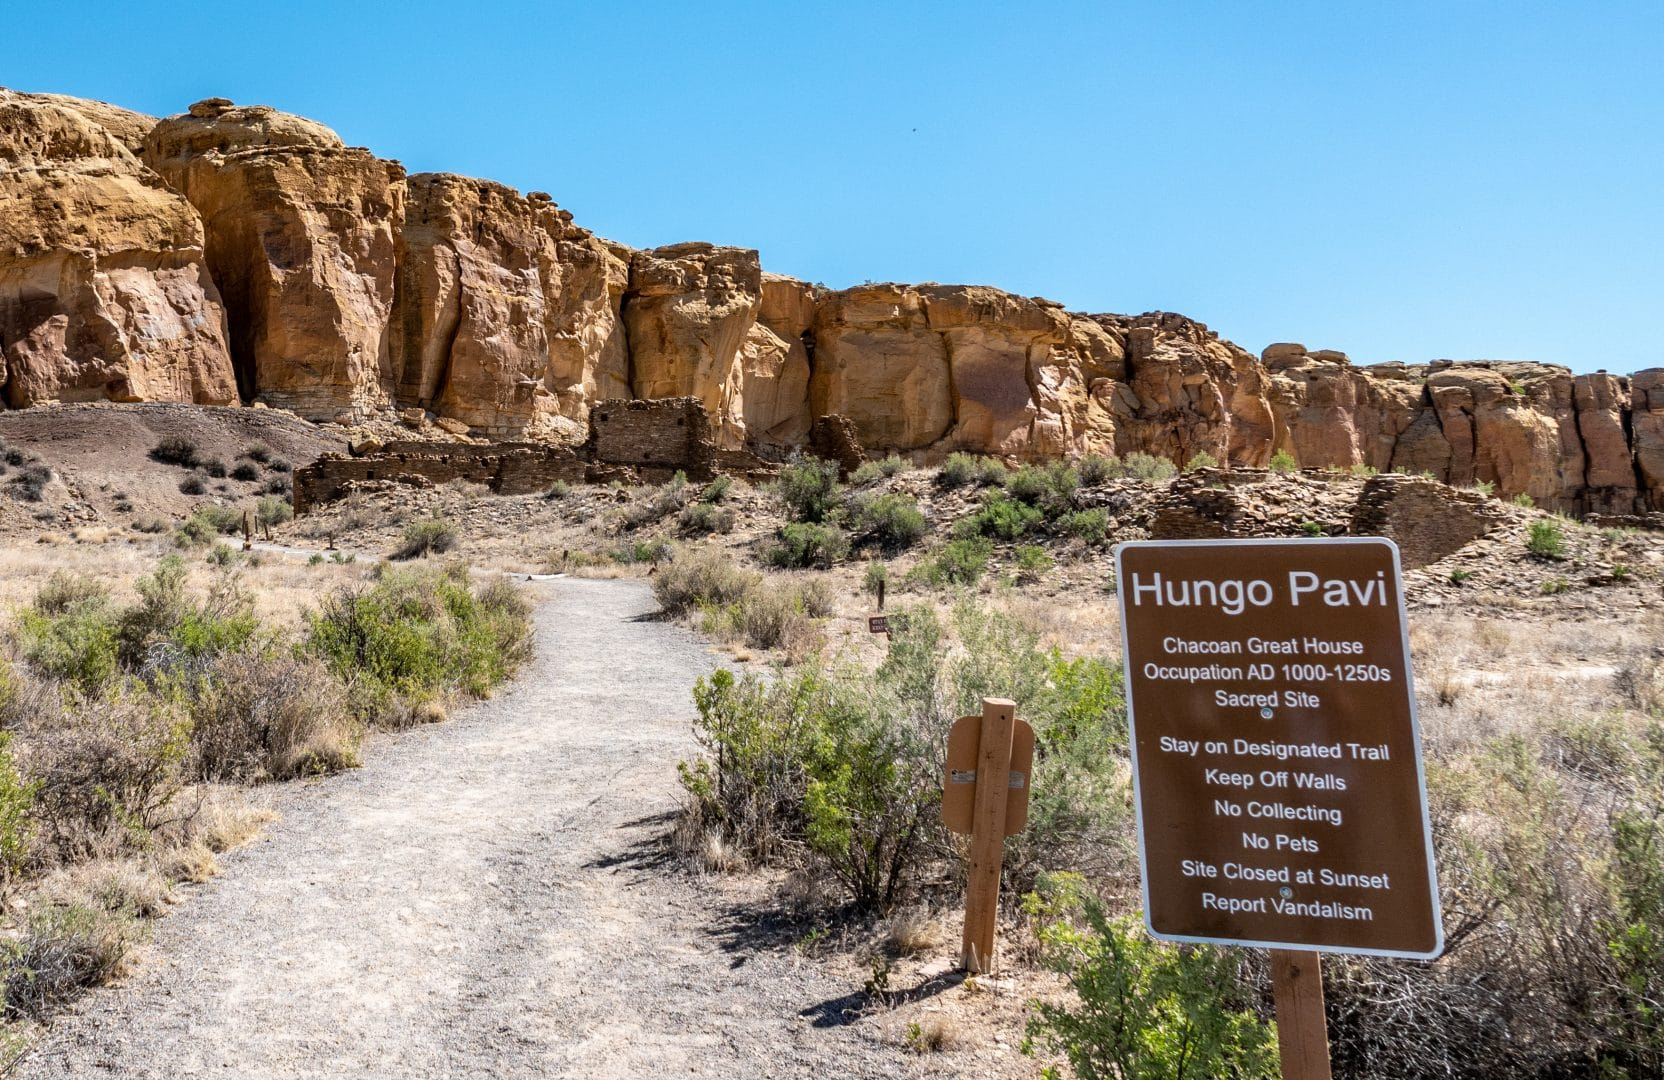 The trail leading to Hungo Pavi, one of the many culturally sensitive and ancient pueblo ruins at New Mexico's Chaco Culture National Historical Park.  On August 19, 2013, the  International Dark-Sky Association officially designated Chaco Culture an International Dark Sky Park.